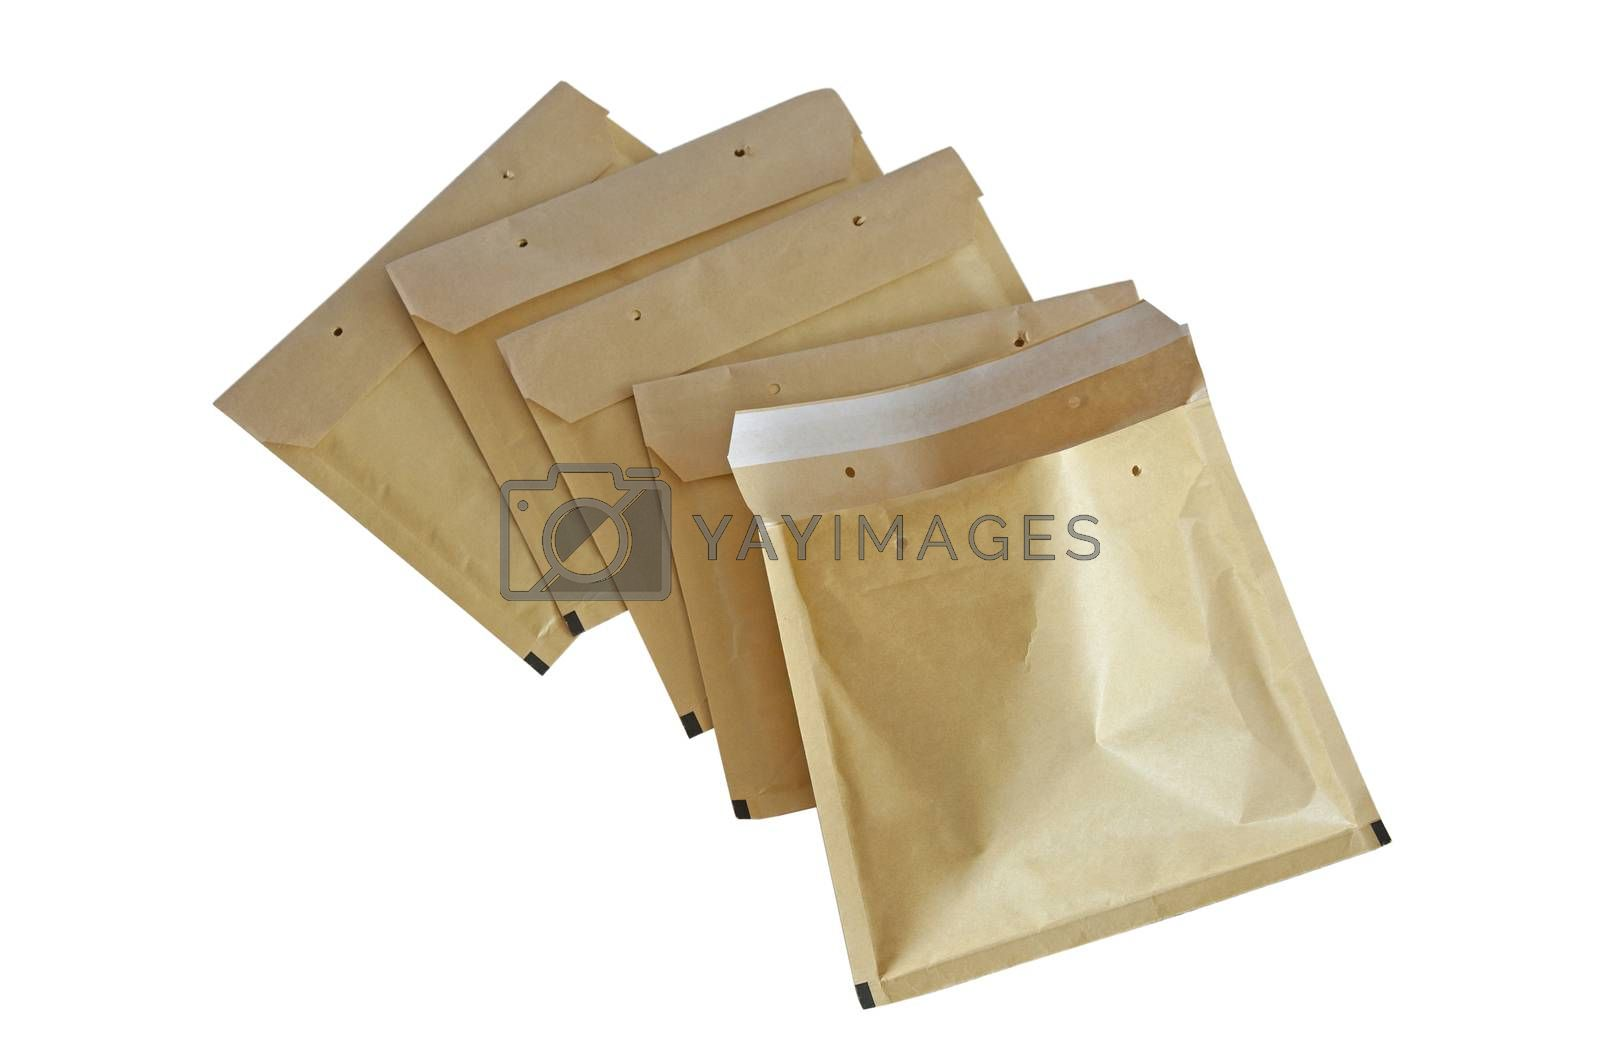 Yellow packaging envelopes isolated on white